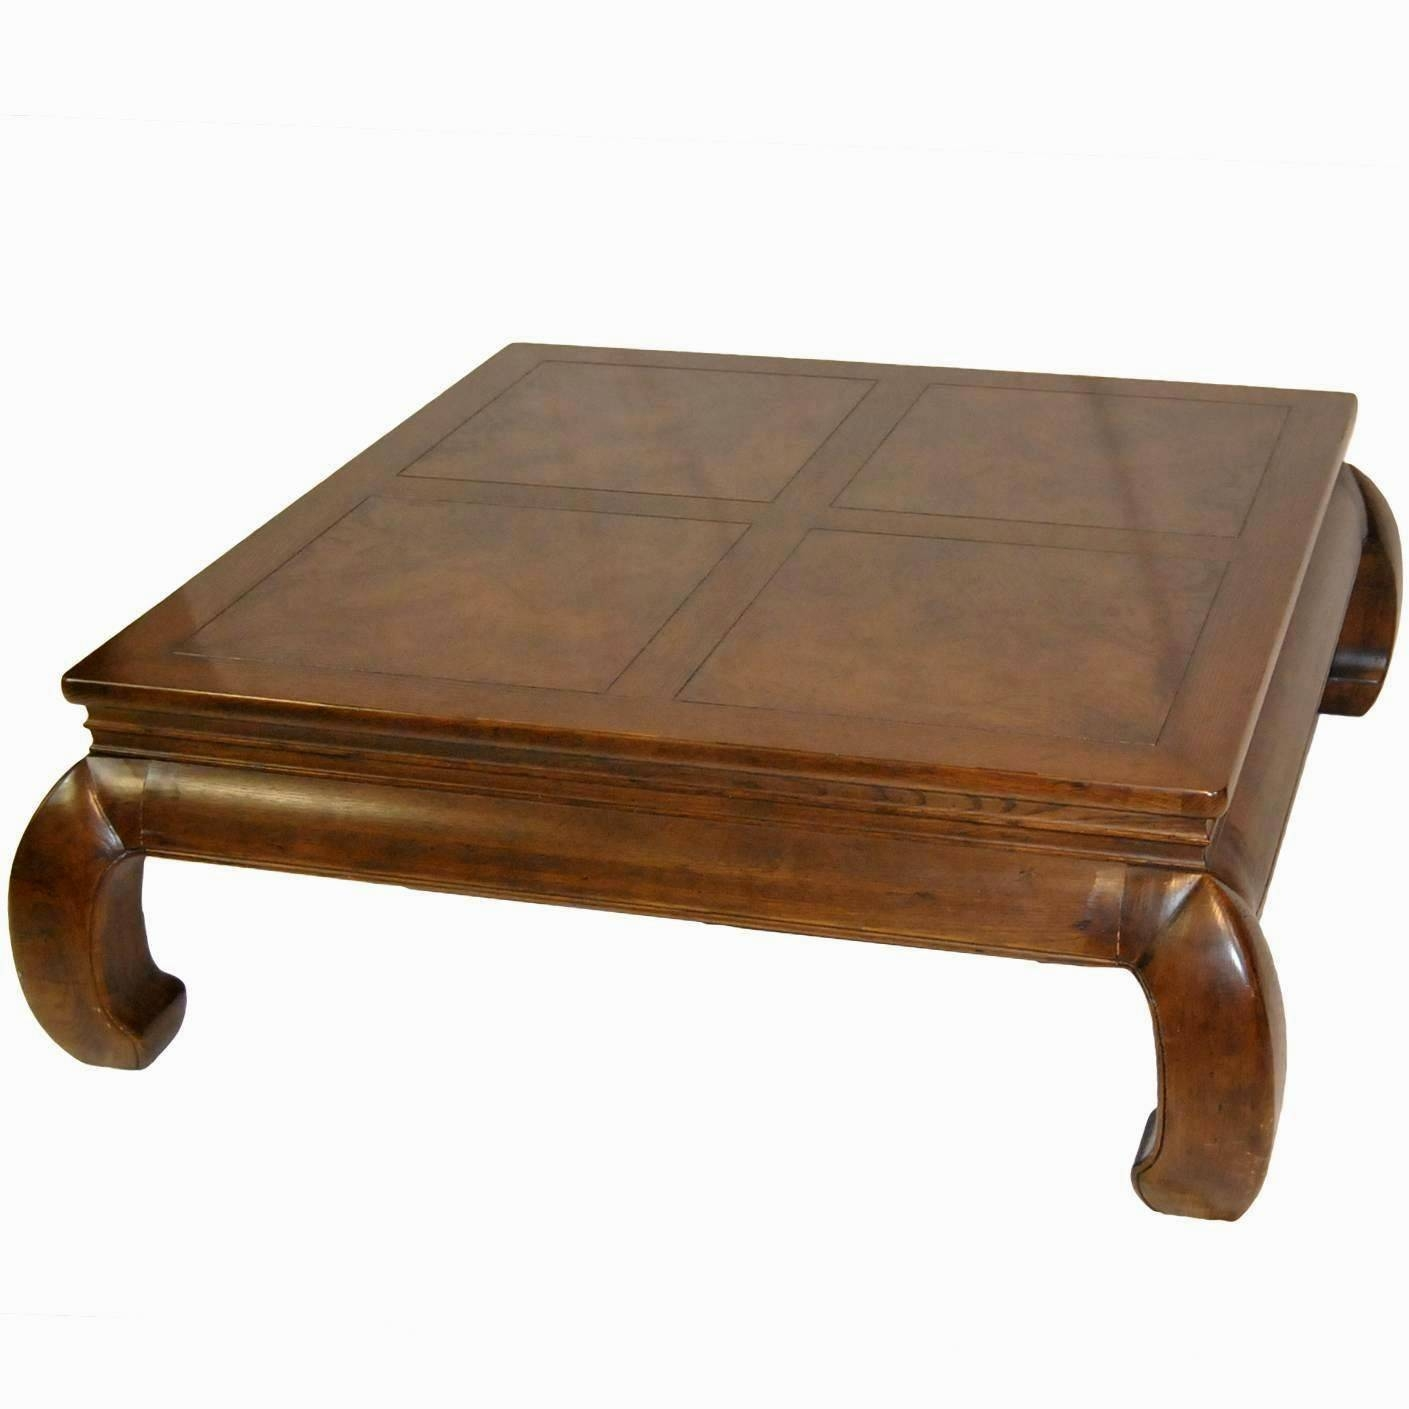 Asian Coffee Table 7 | Home Decor I Furniture with regard to Asian Coffee Tables (Image 4 of 30)